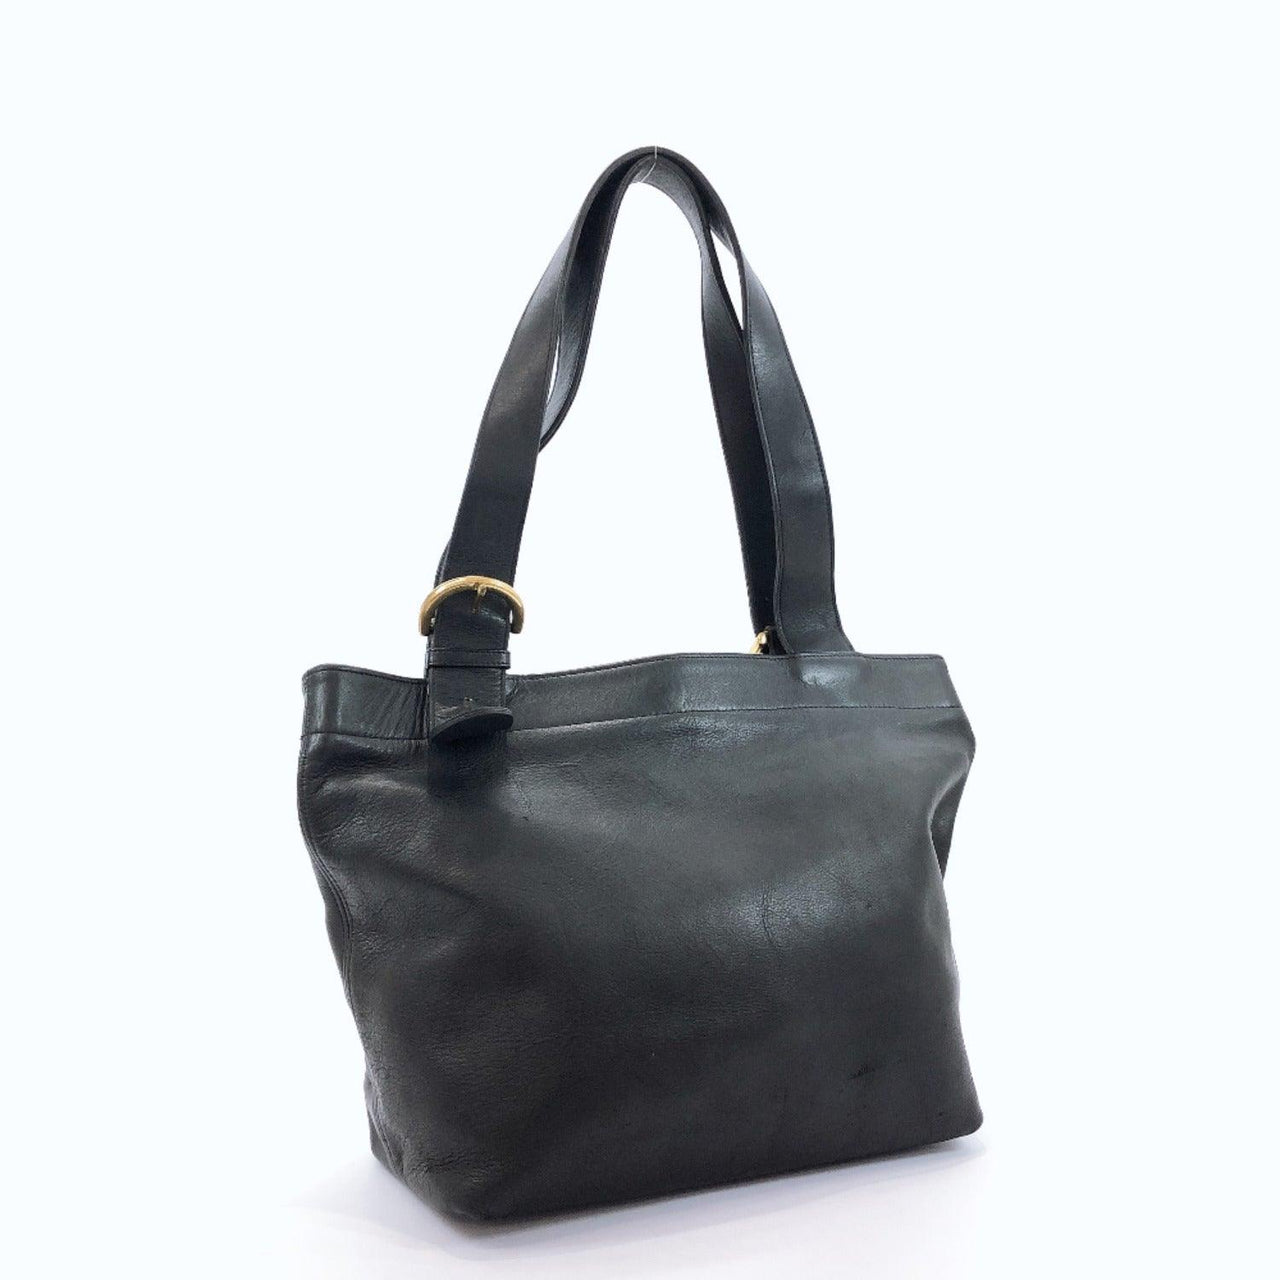 COACH Tote Bag Old coach leather black Women Used